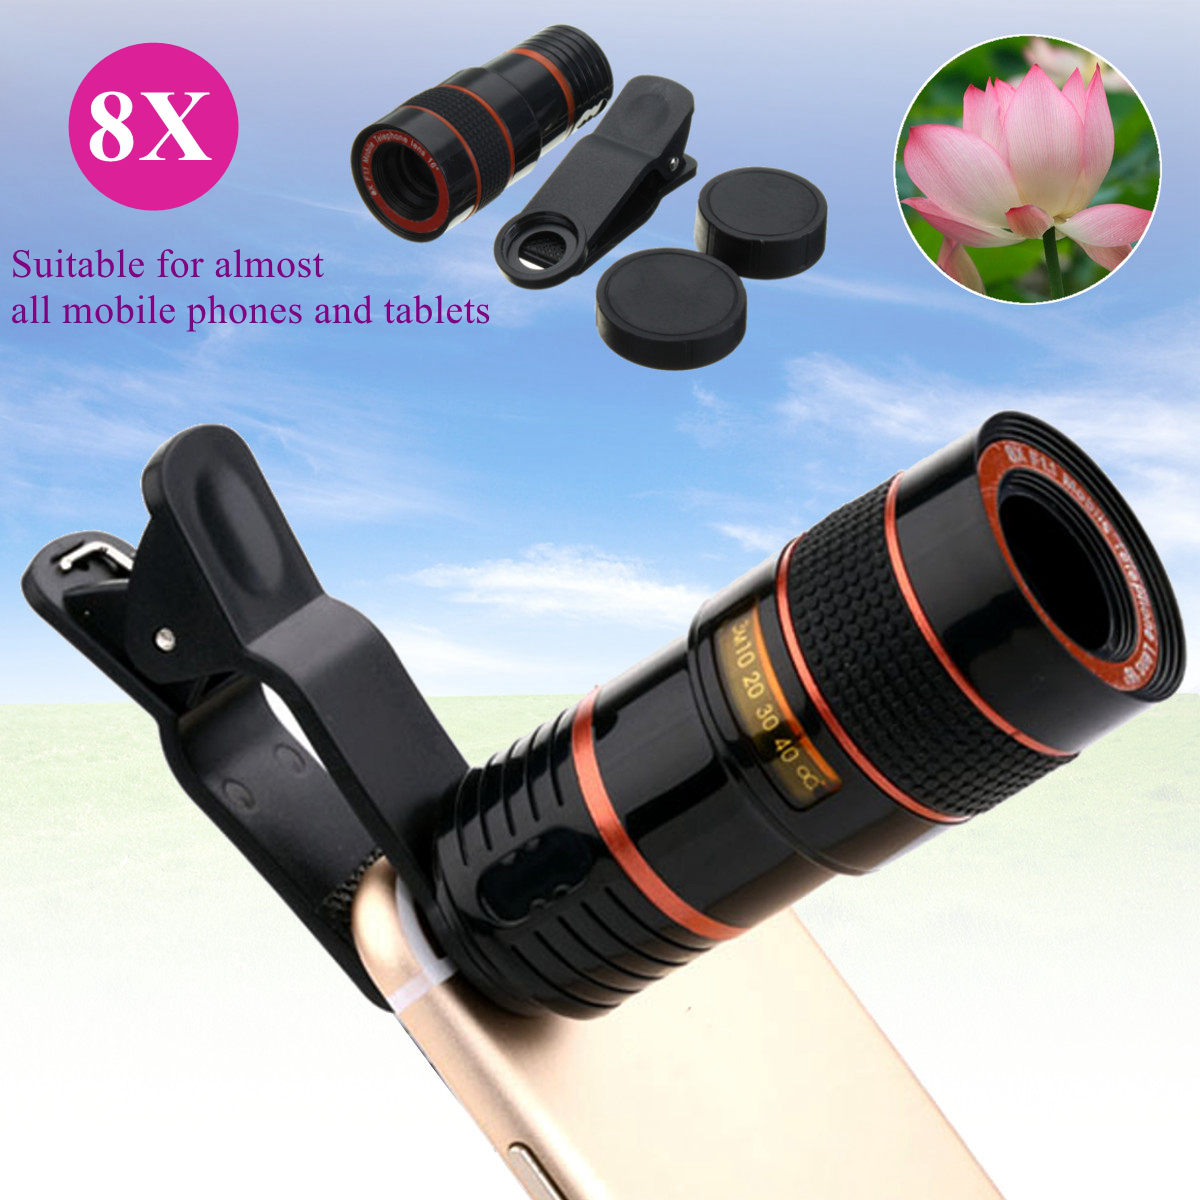 8X Zoom Black Phone Telescope Telephoto Lens with Clip for iPhone Samsung Xiaomi